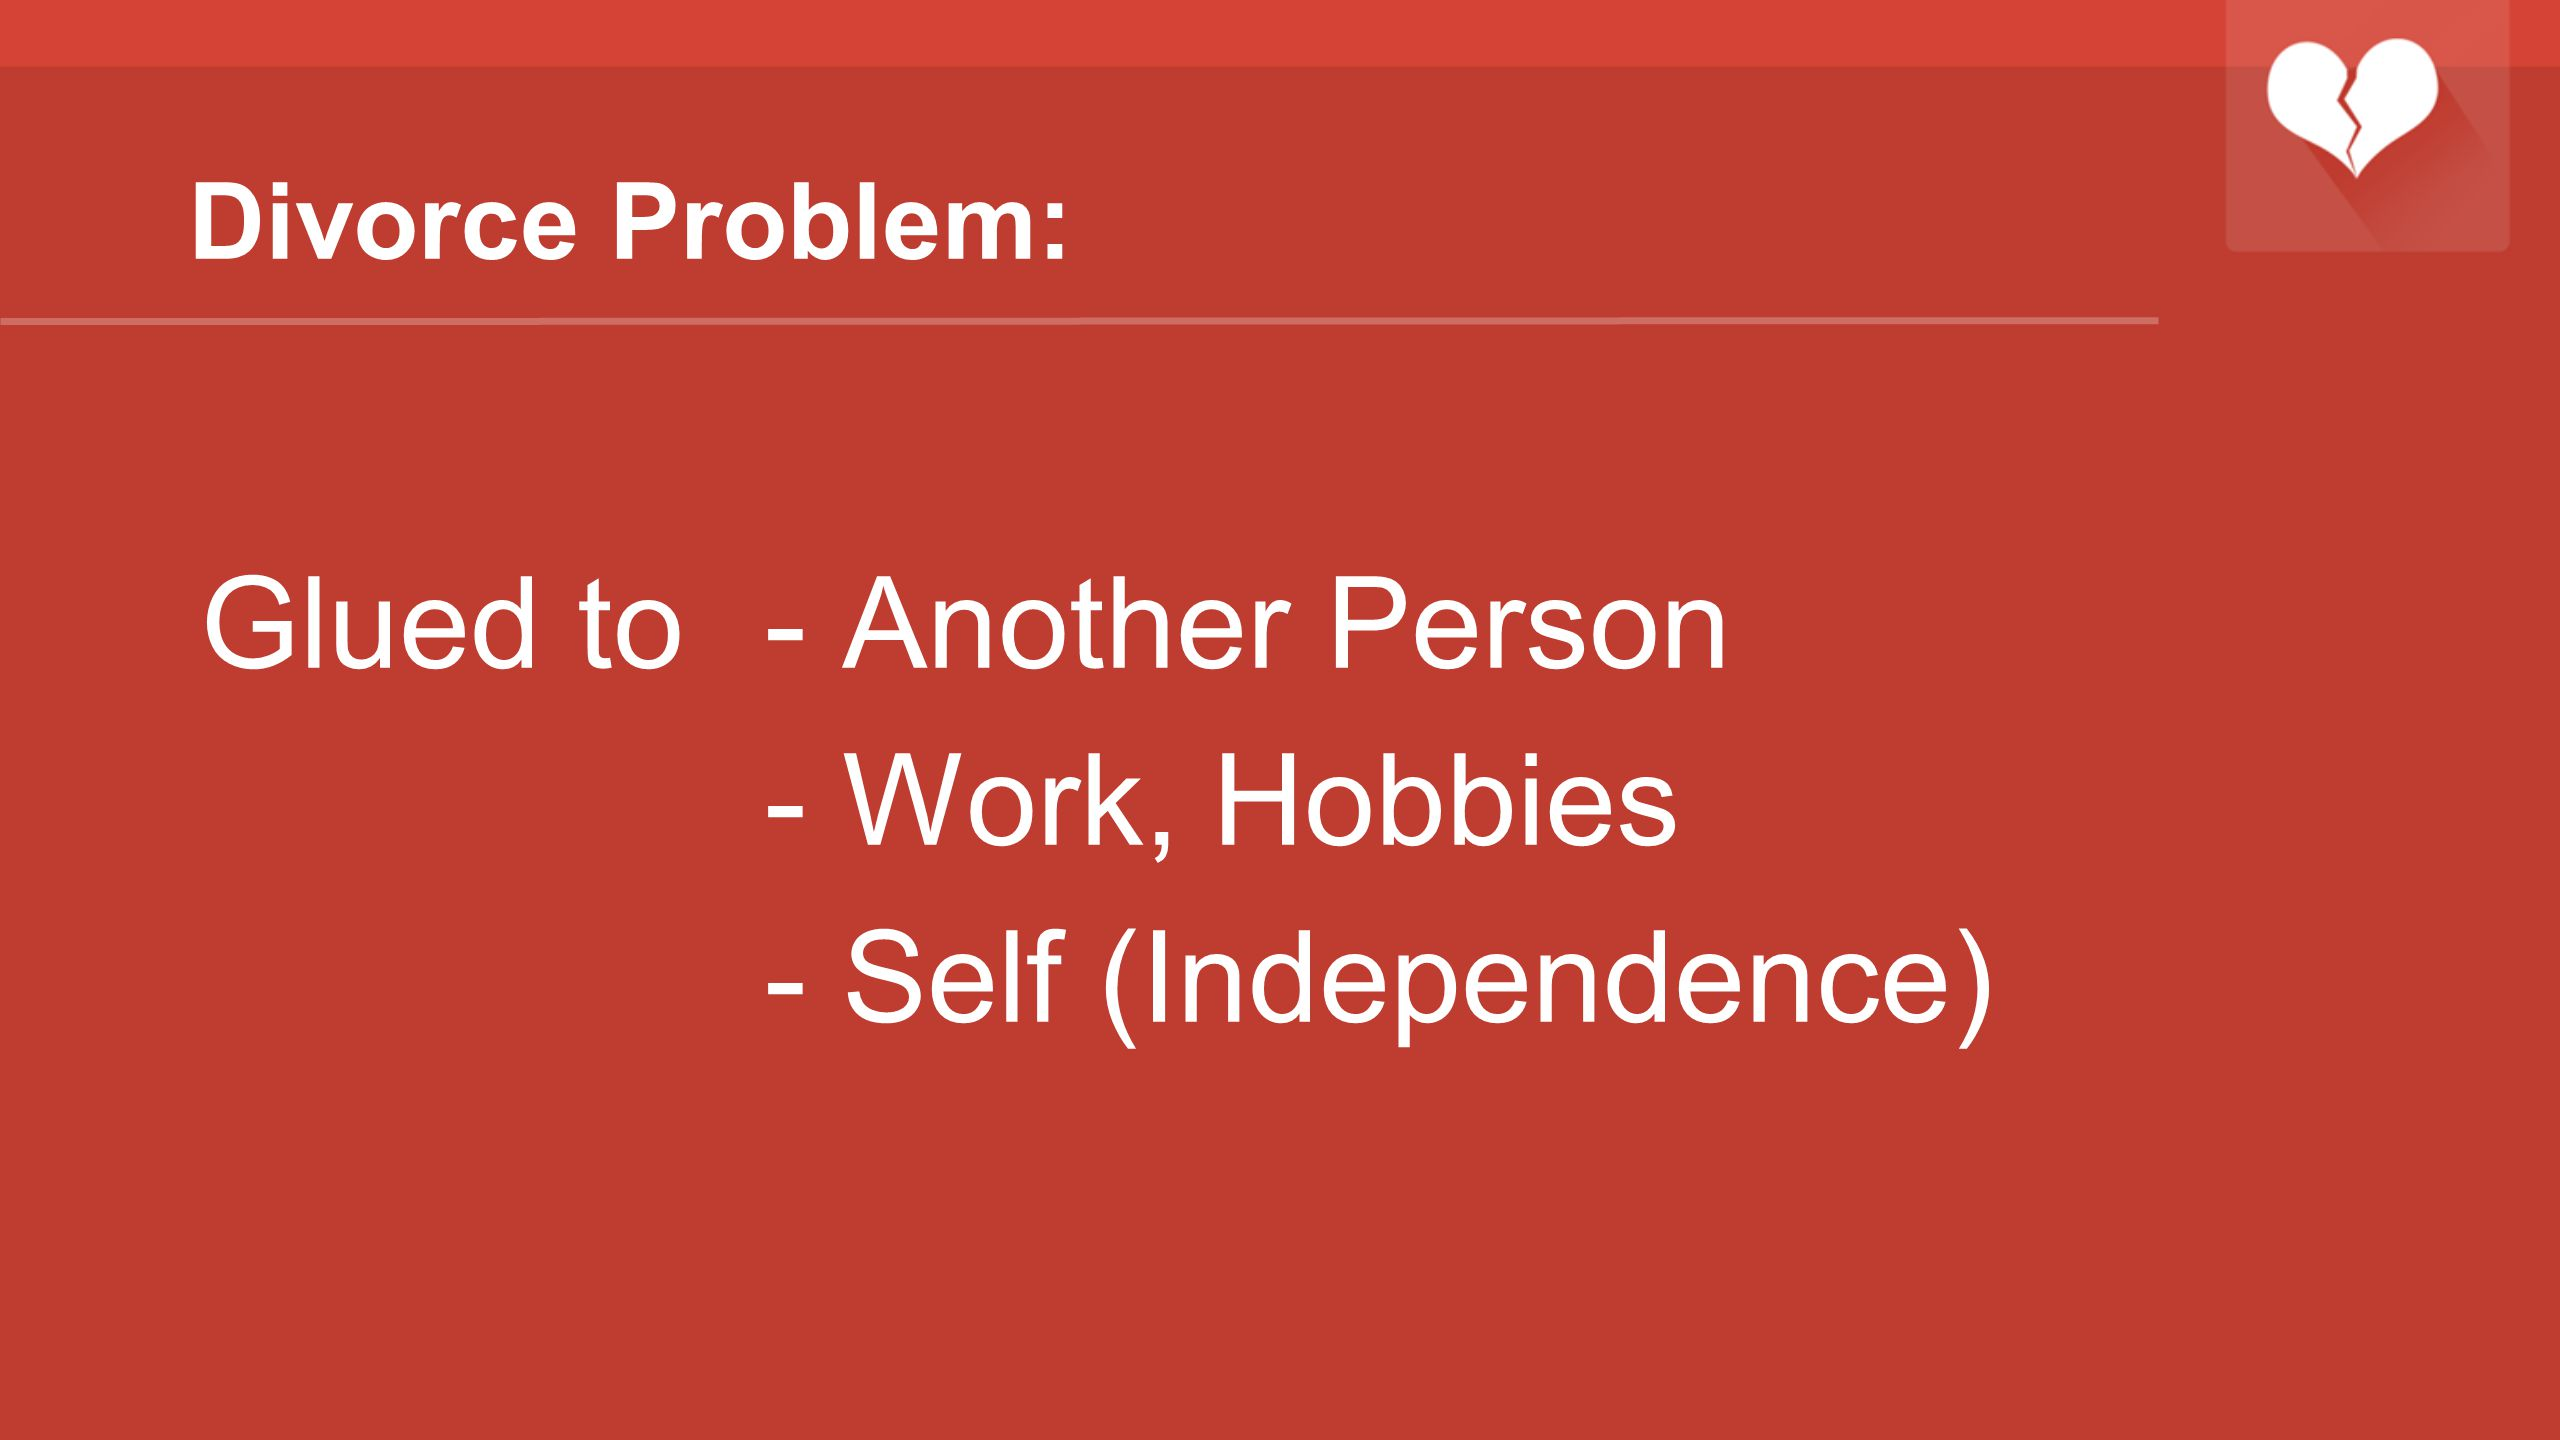 Glued to - Another Person - Work, Hobbies - Self (Independence)